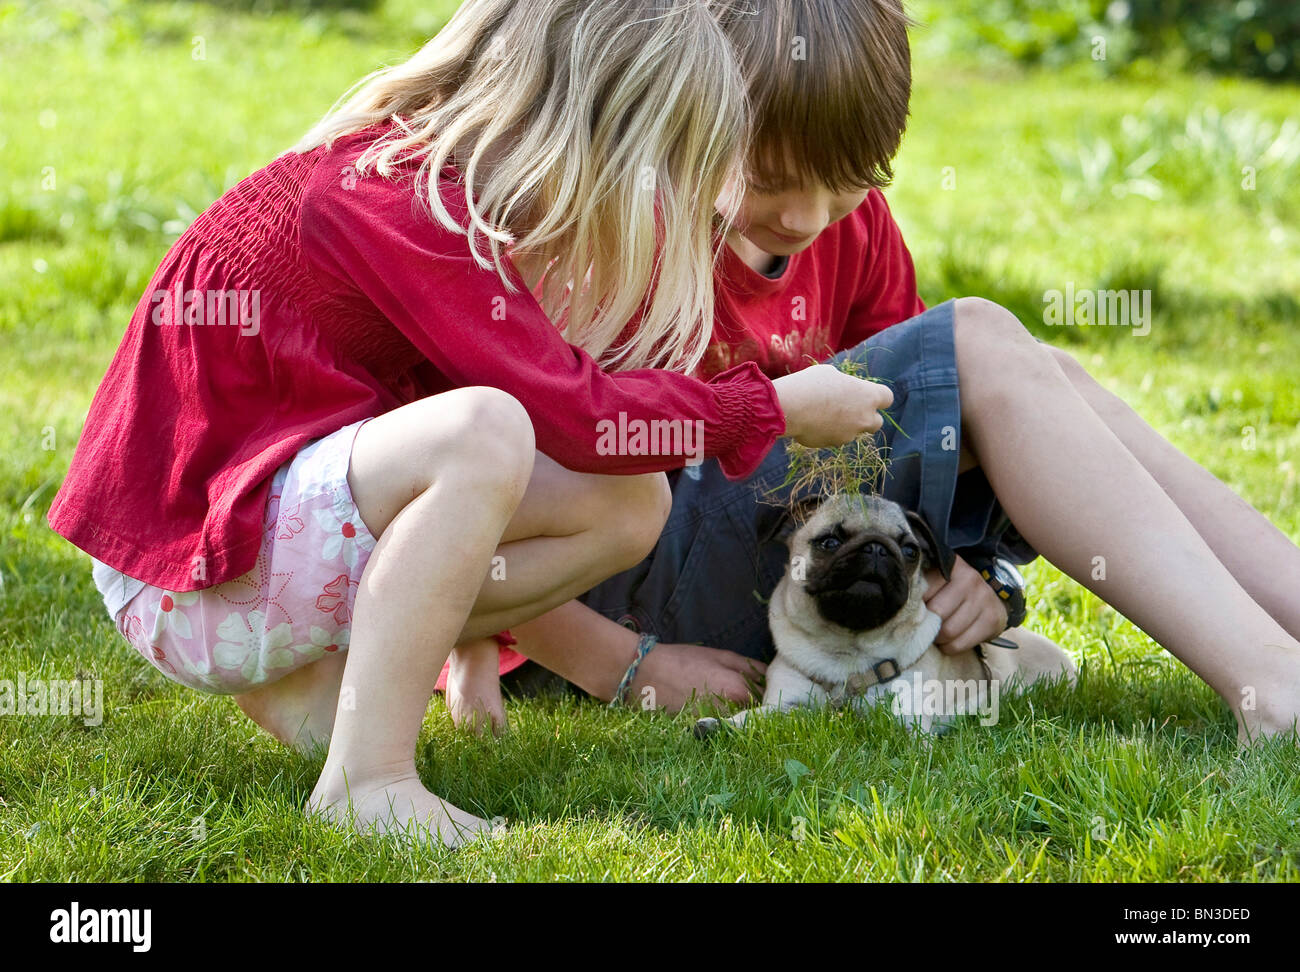 Boy, girl and pug on lawn - Stock Image